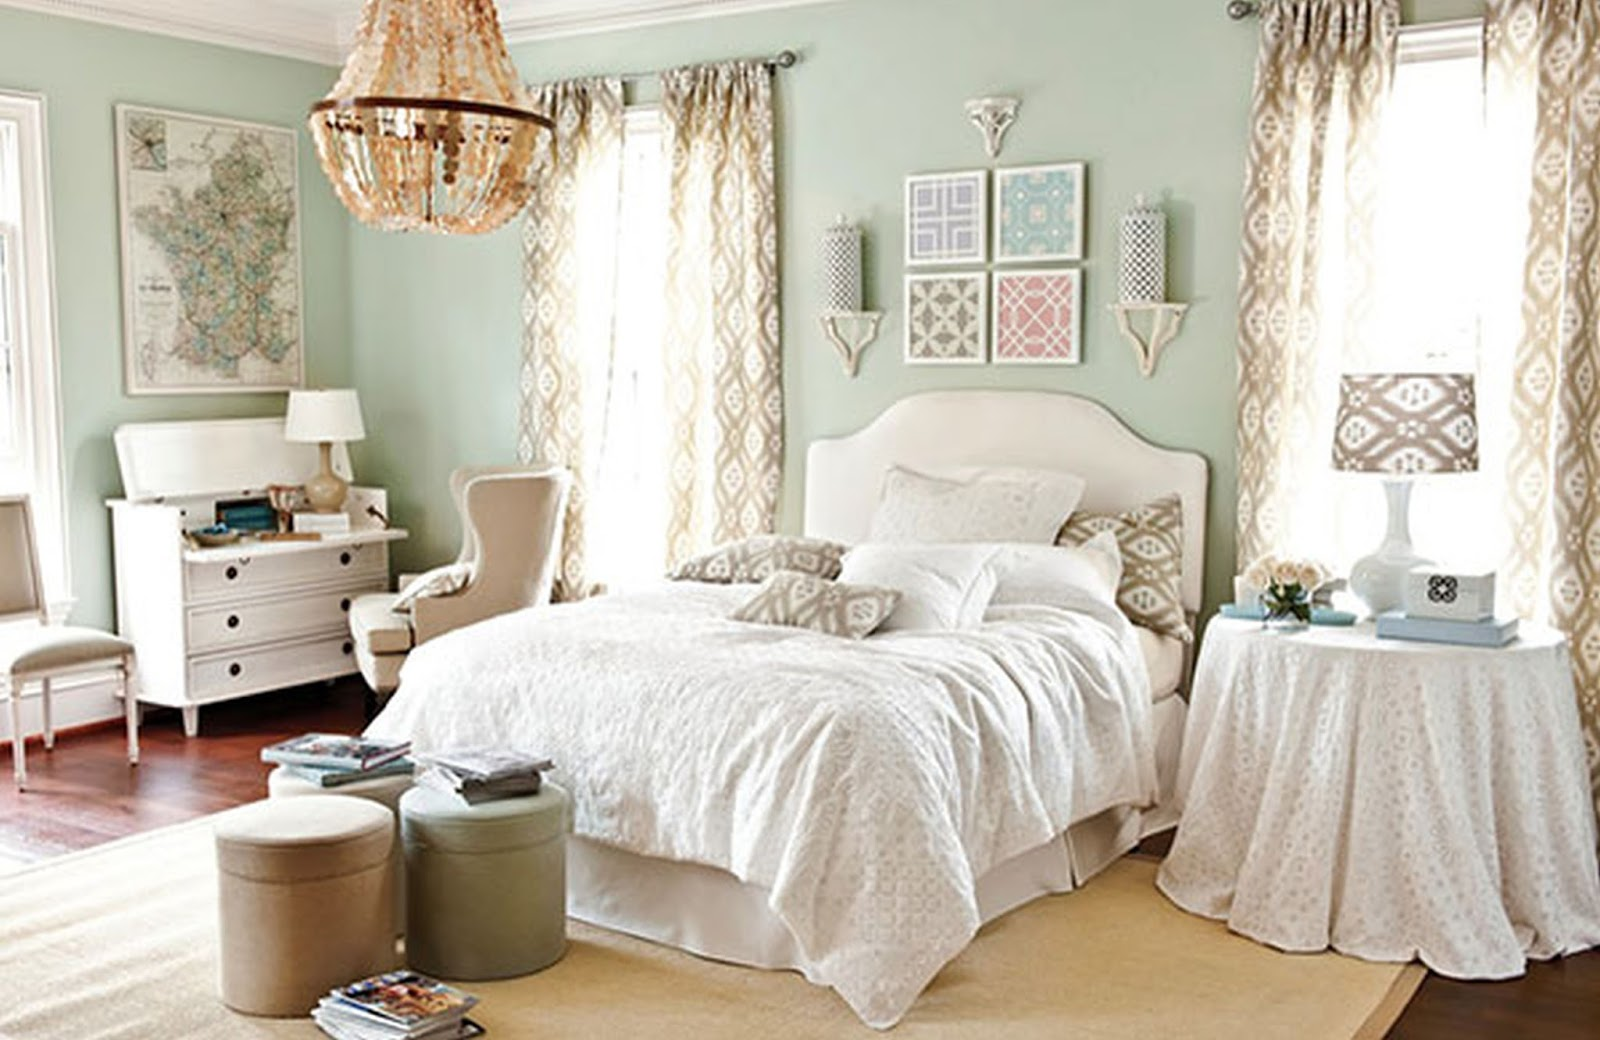 How To Decorate A Small Bedroom For A Teenager Dormitorios Románticos Plaza Digital